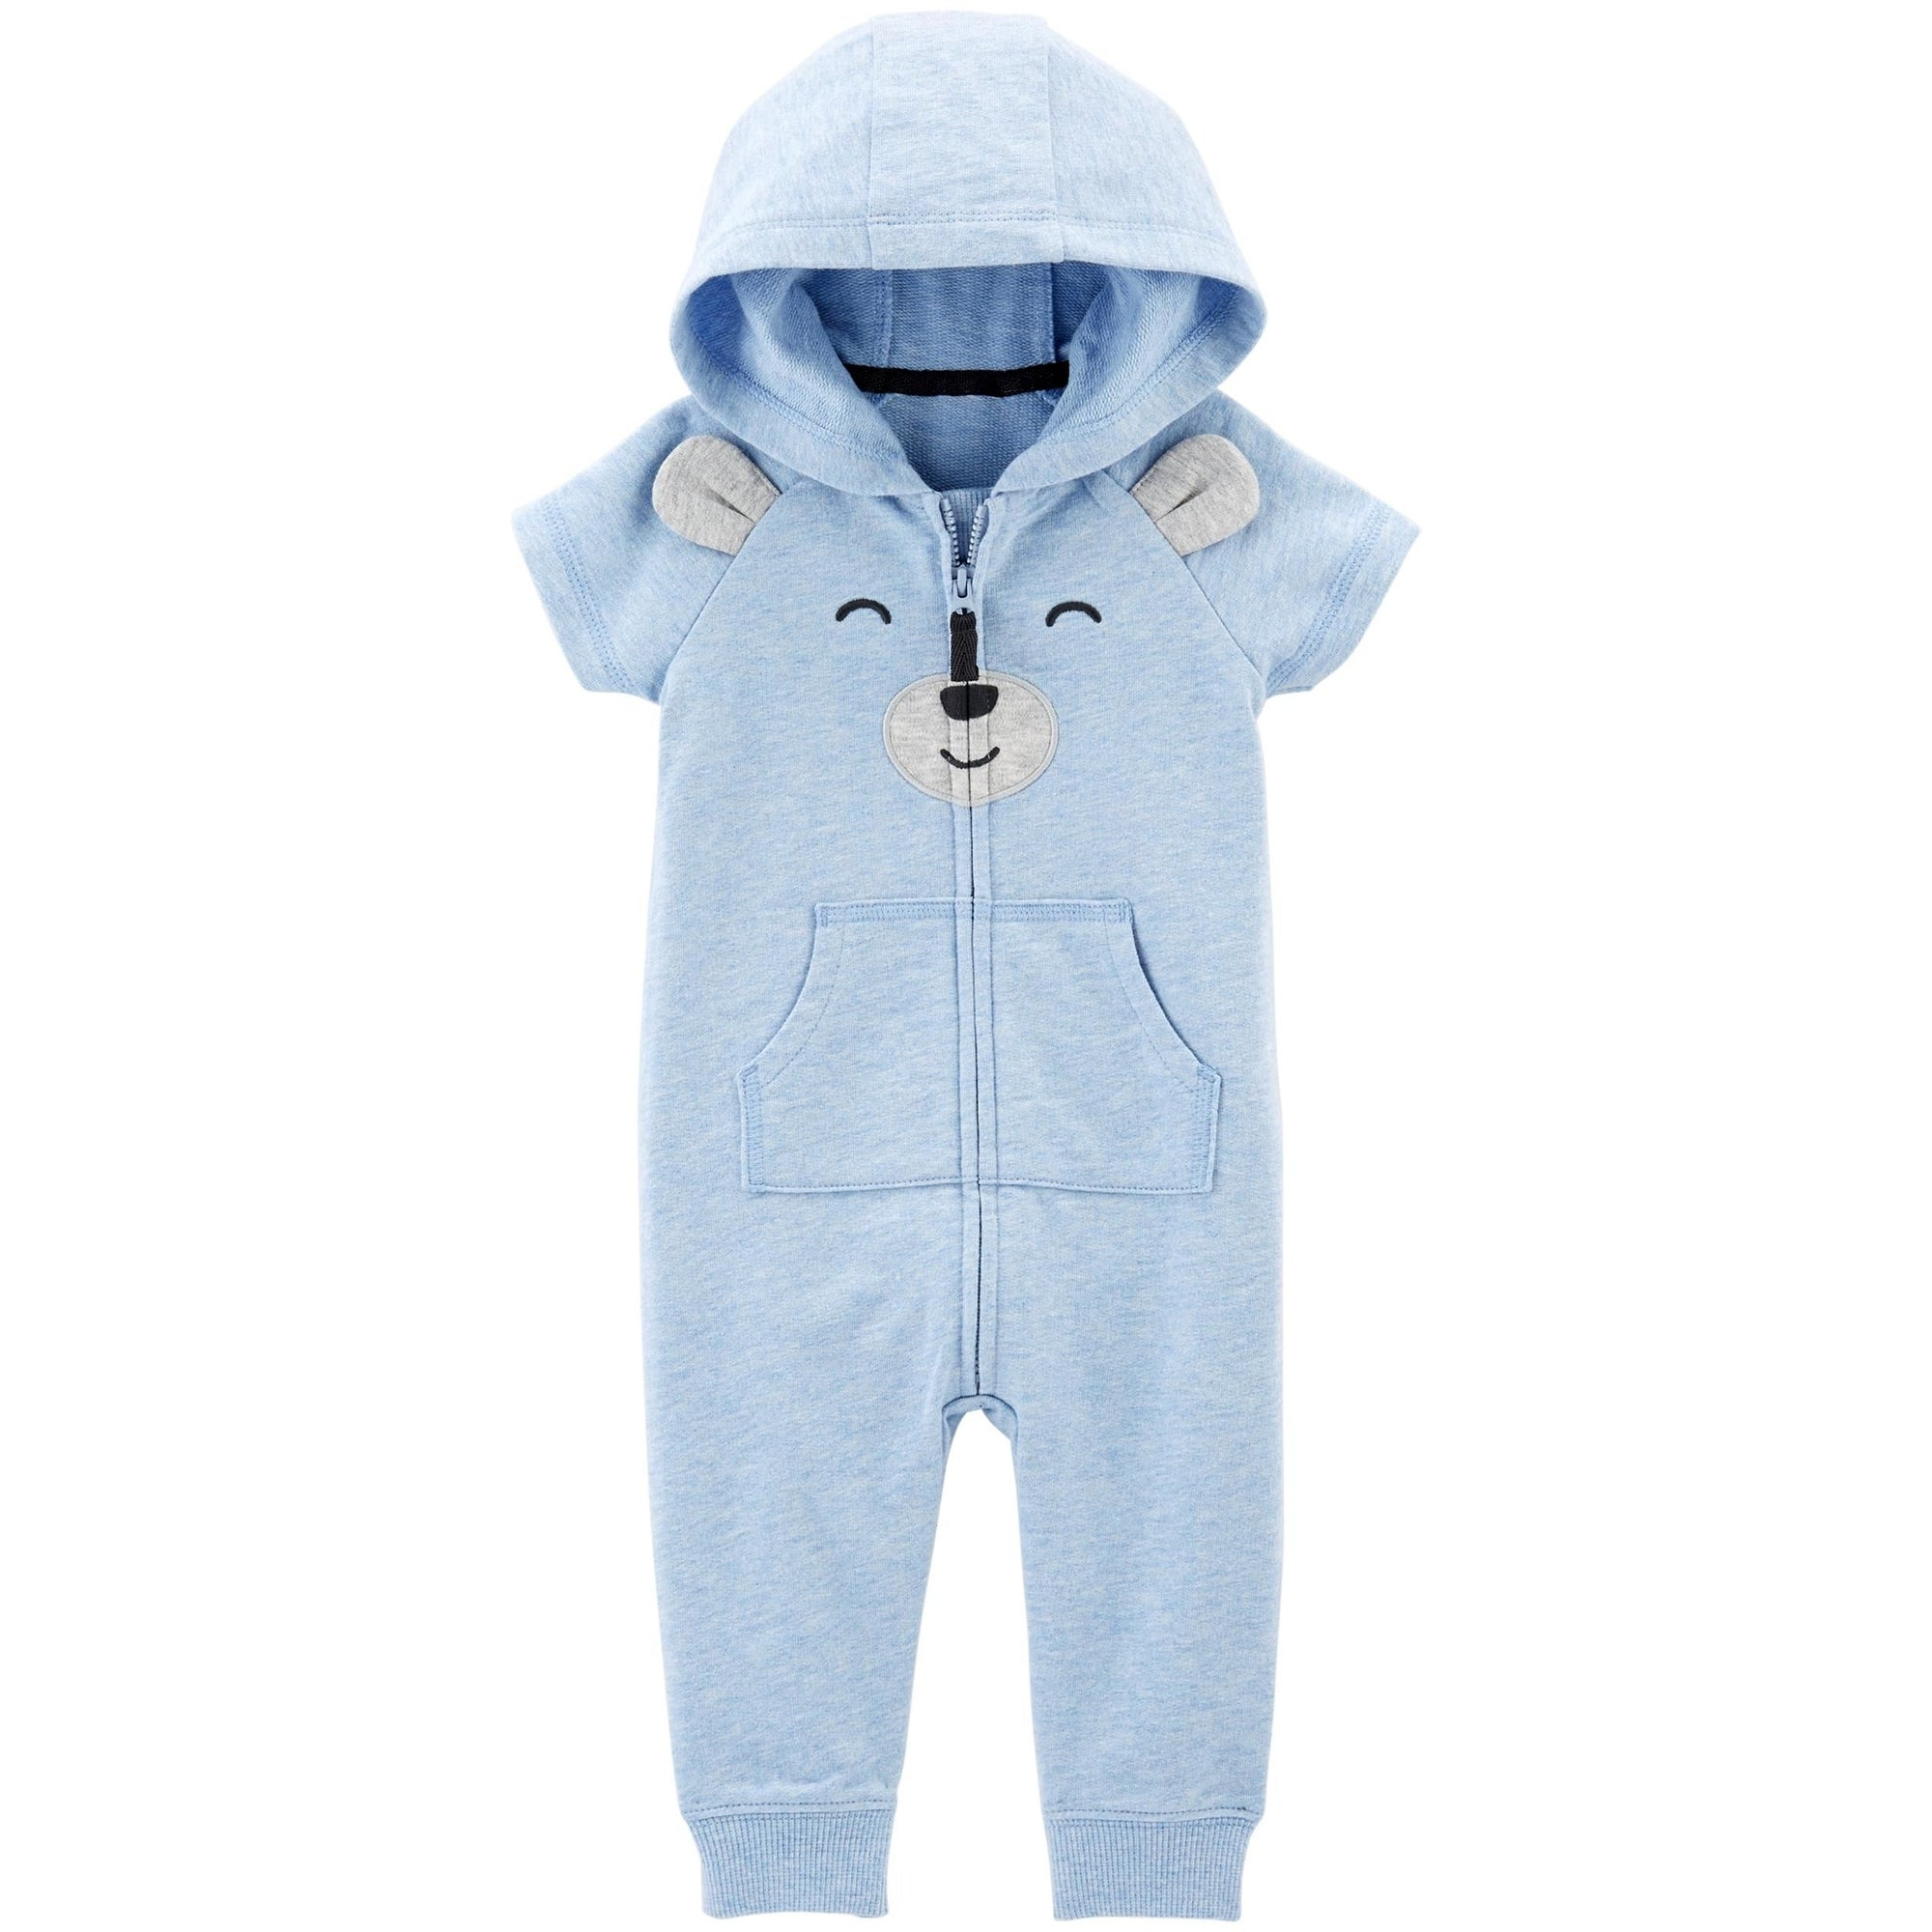 e41ac2a2706 Shop Carter s Baby Boys  Hooded Jumpsuit